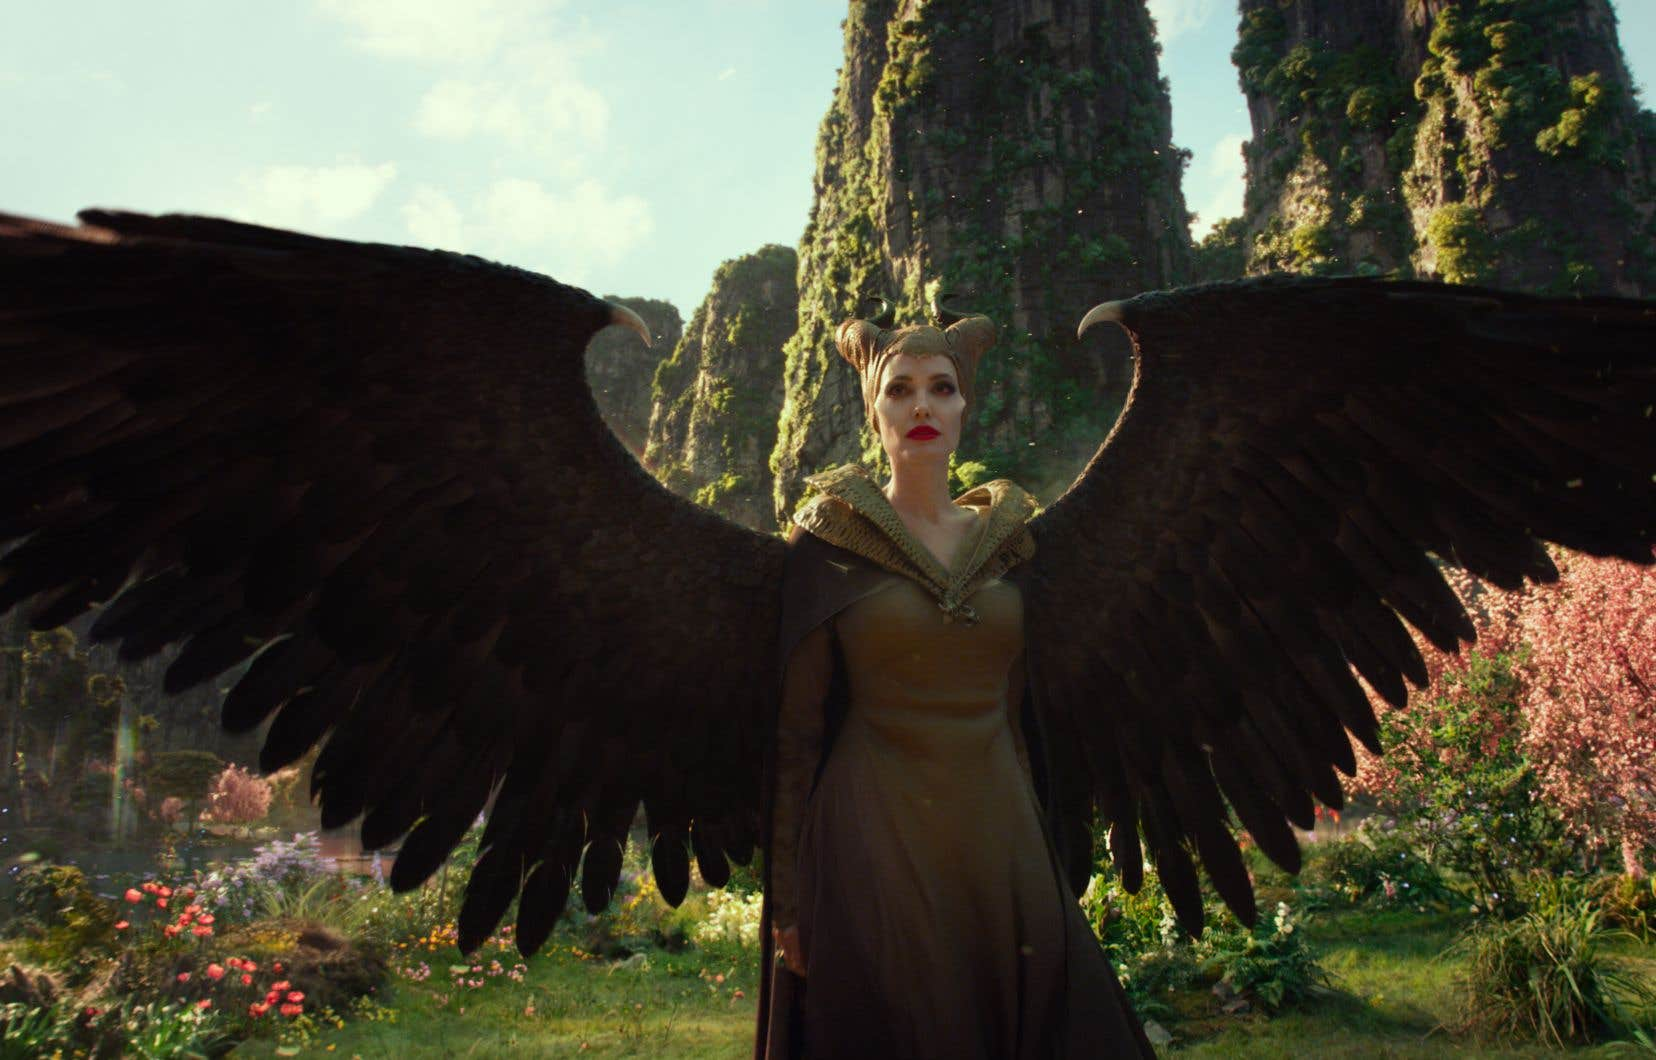 «Maleficent: Mistress of Evil» revisite une fois de plus les angles morts et les zones d'ombres du conte de «La belle au bois dormant», y injectant même une dimension politico-écologique pour qui voudra bien la voir.